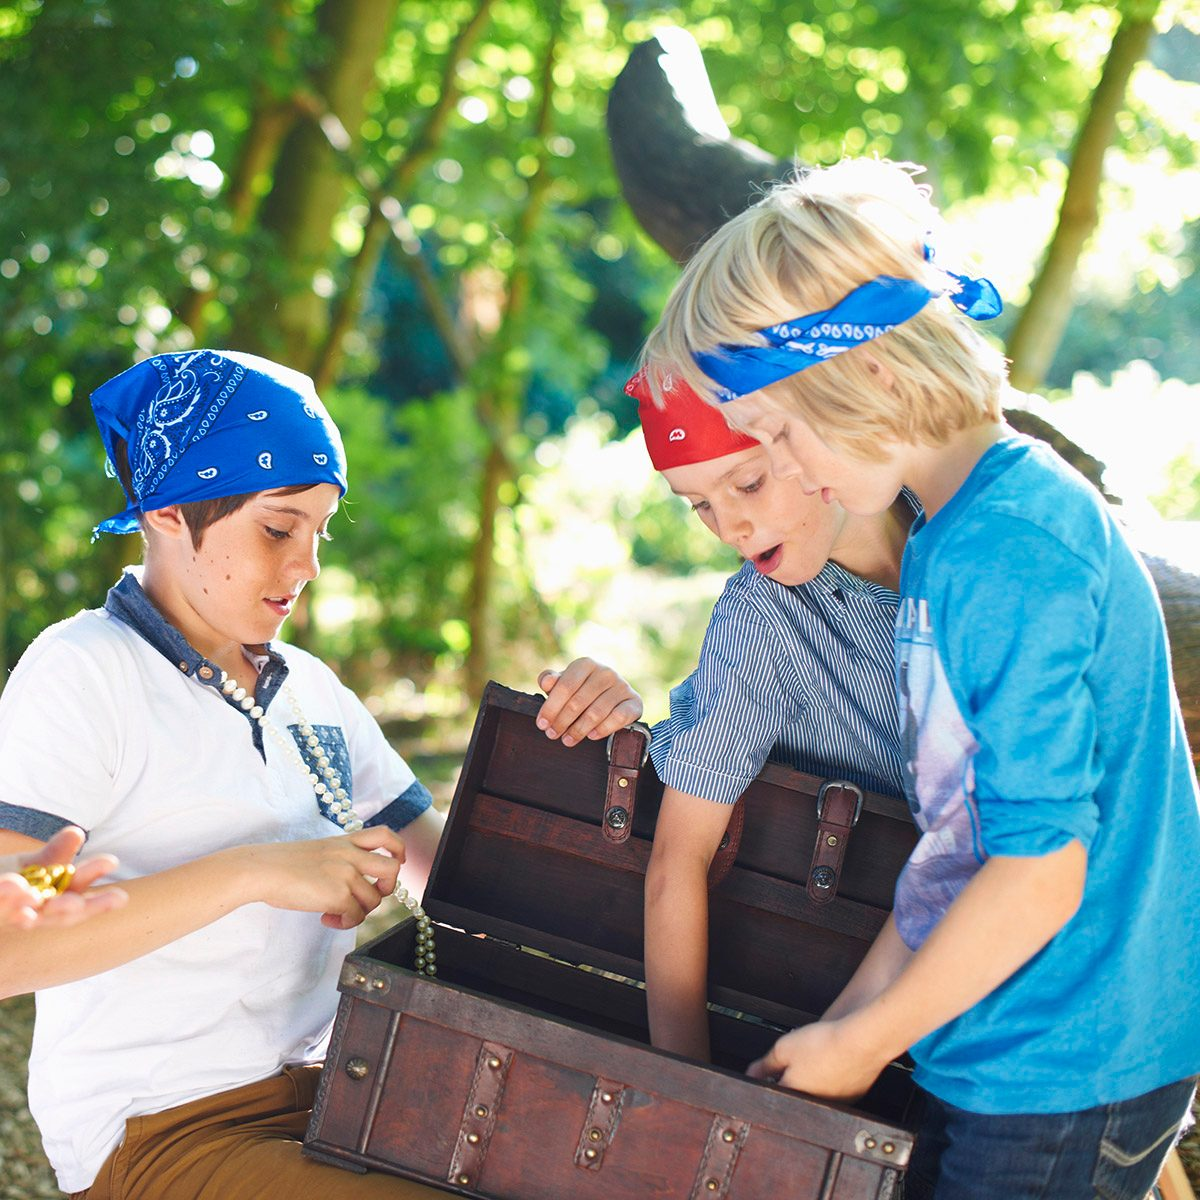 Young boys dressed as pirates with treasure chest